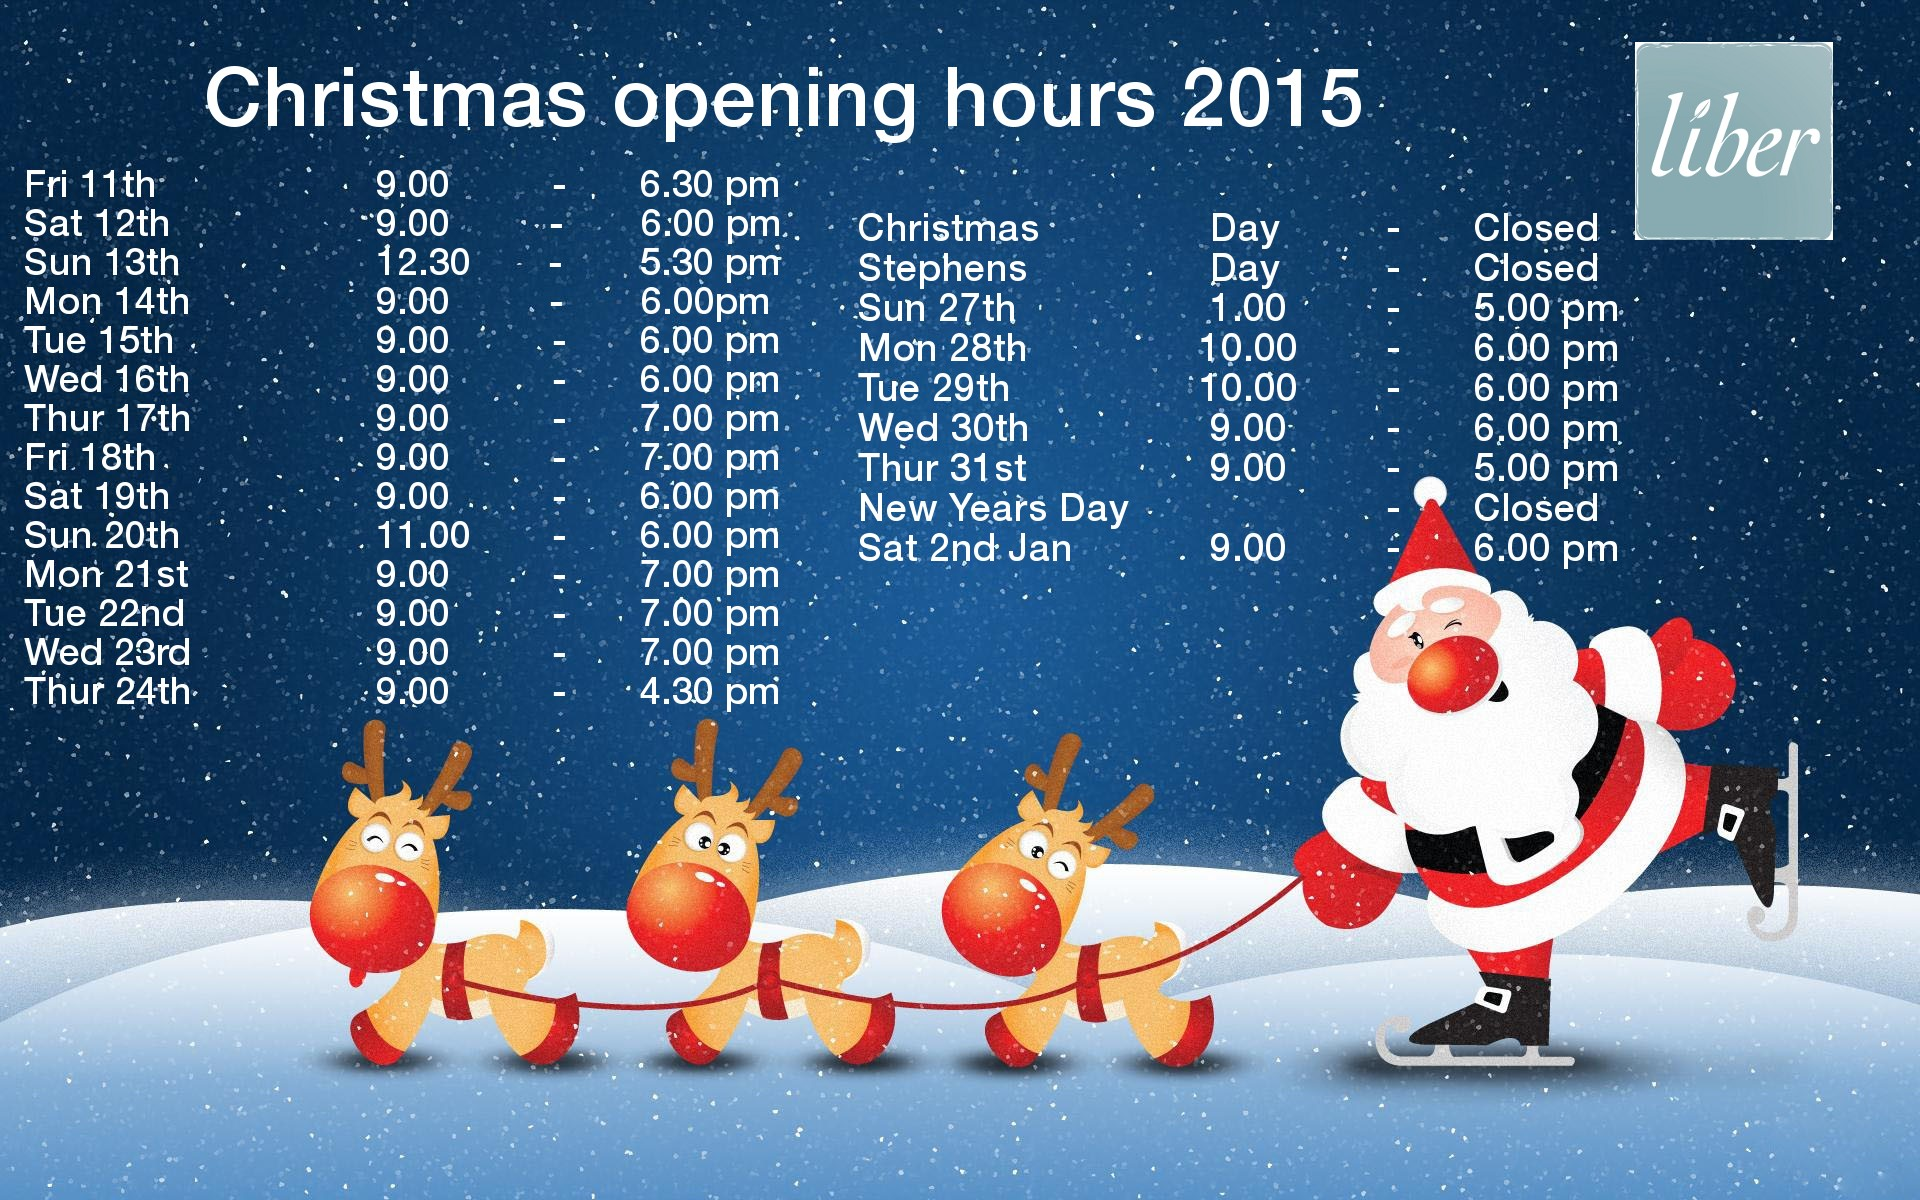 Christmas opening hours complete 2015